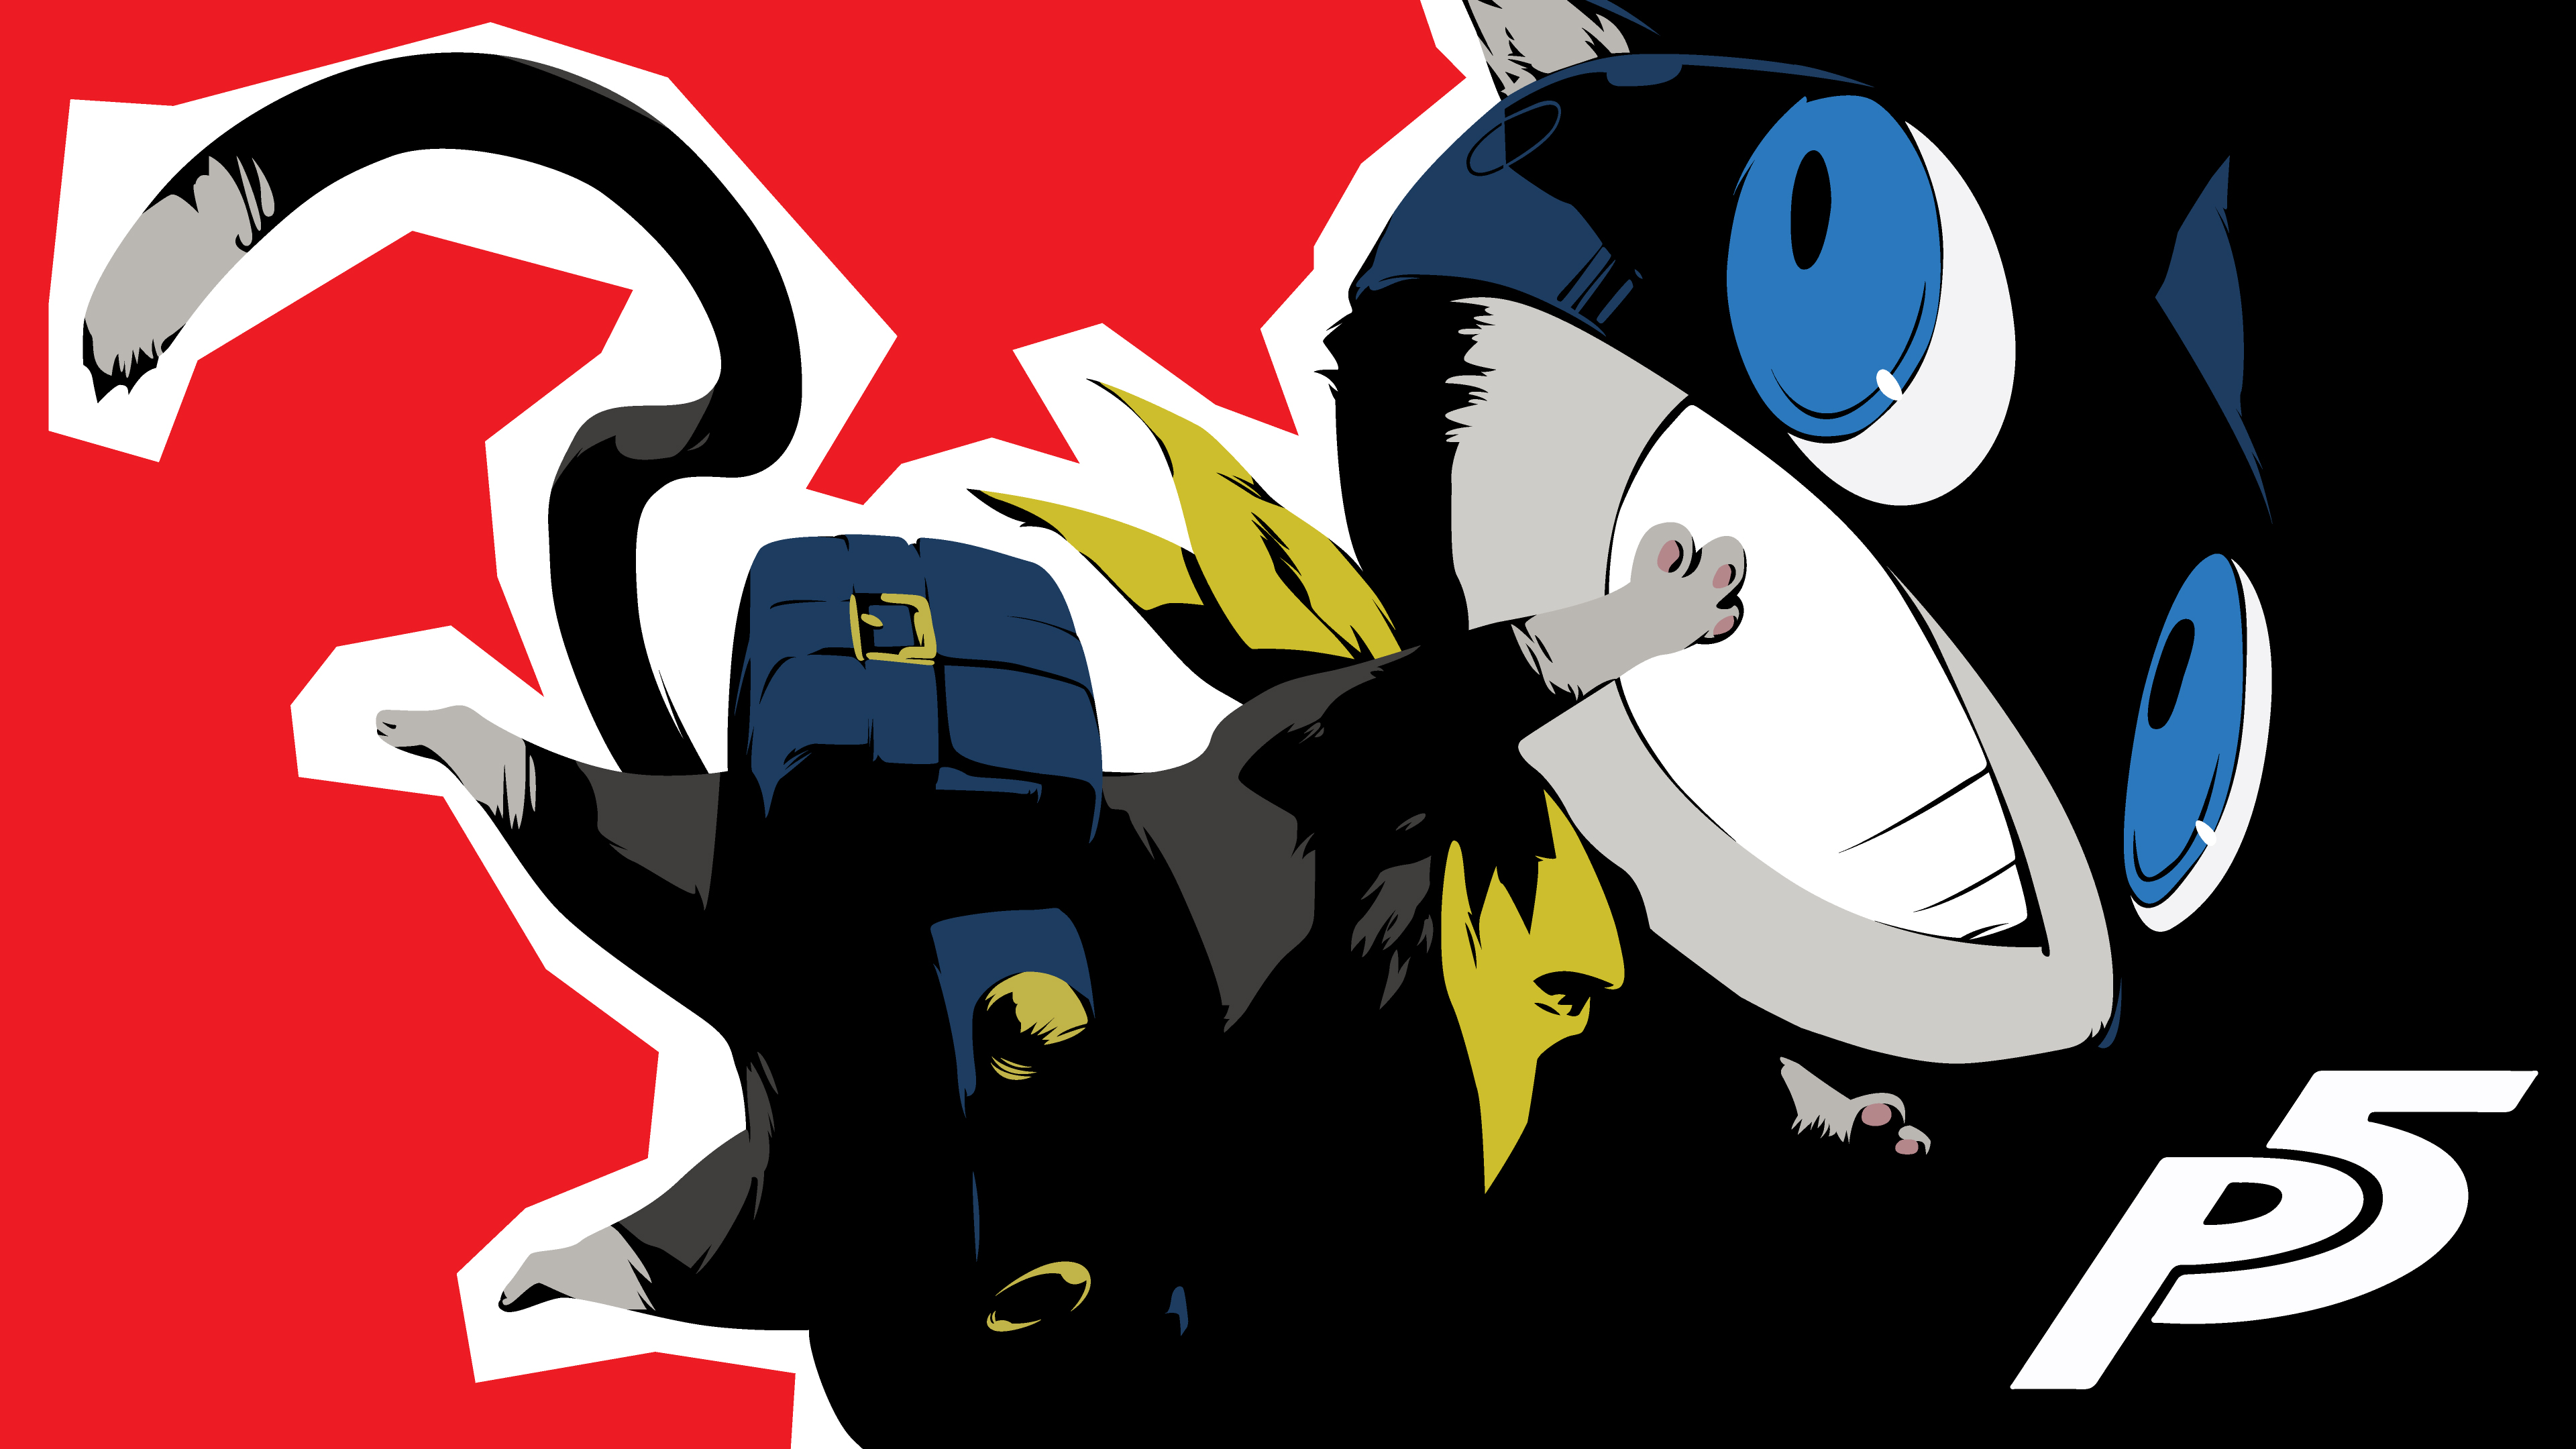 Persona 5 Royal Morgana